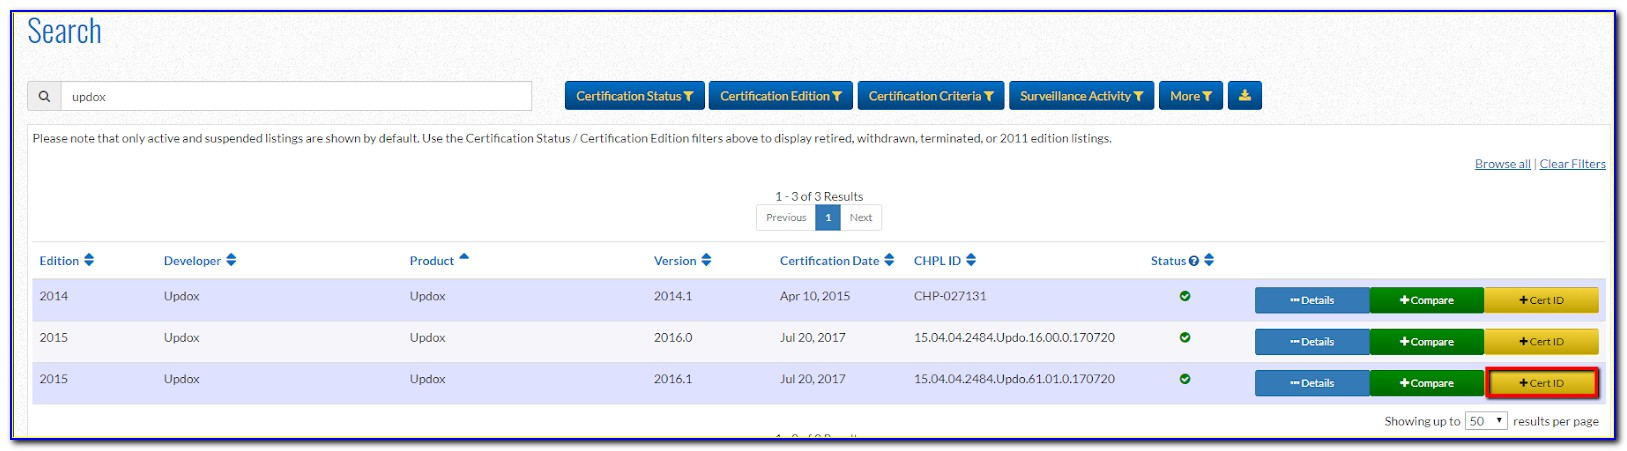 Cms Ehr Certification Id Number